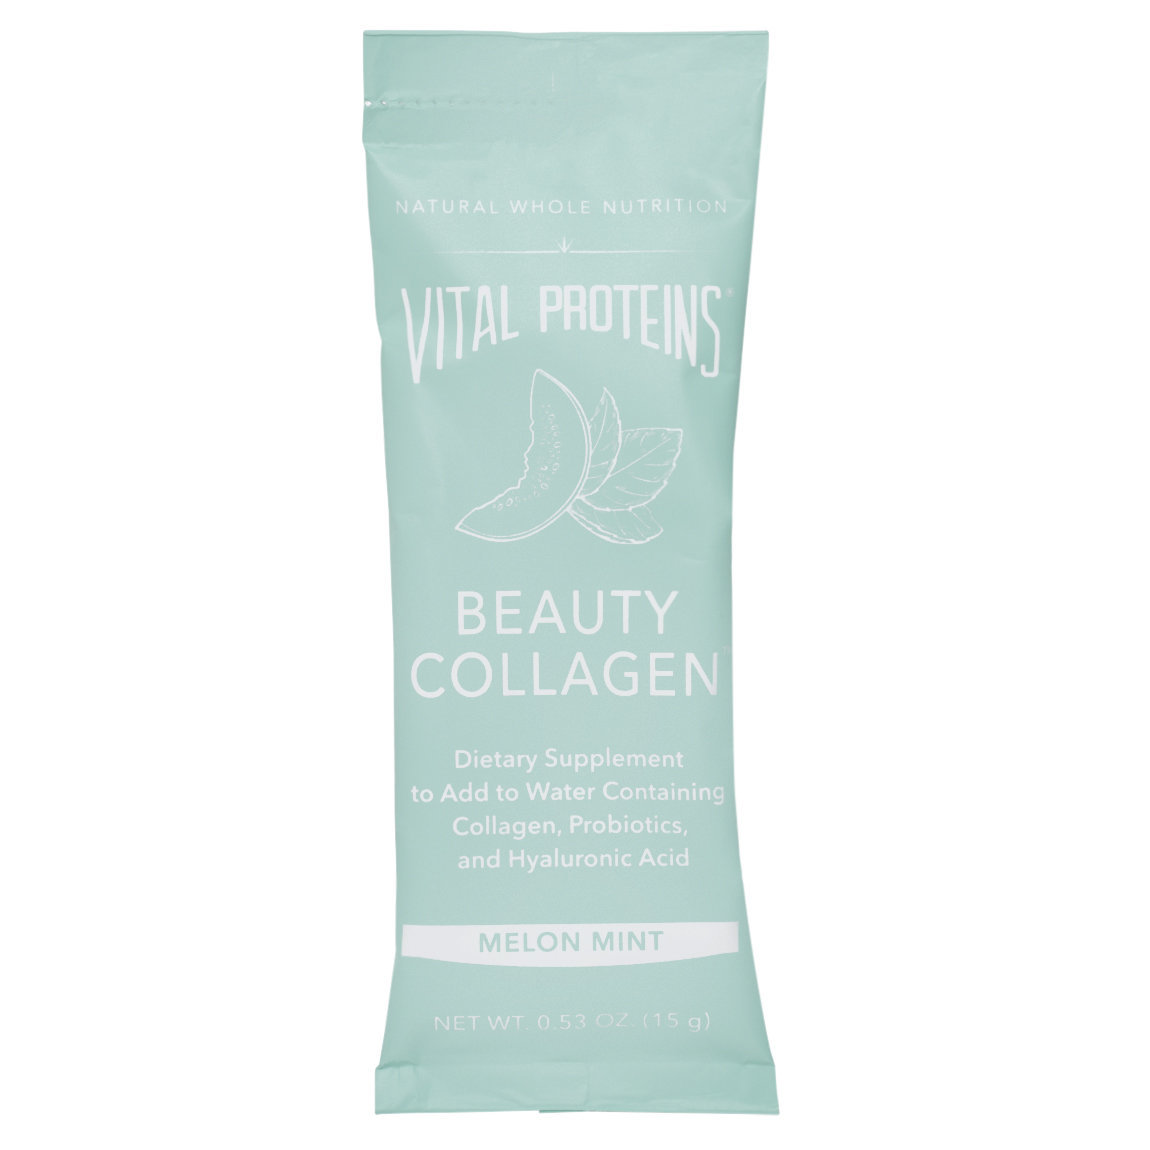 Vital Proteins Beauty Collagen - Melon Mint Stick Packs product swatch.